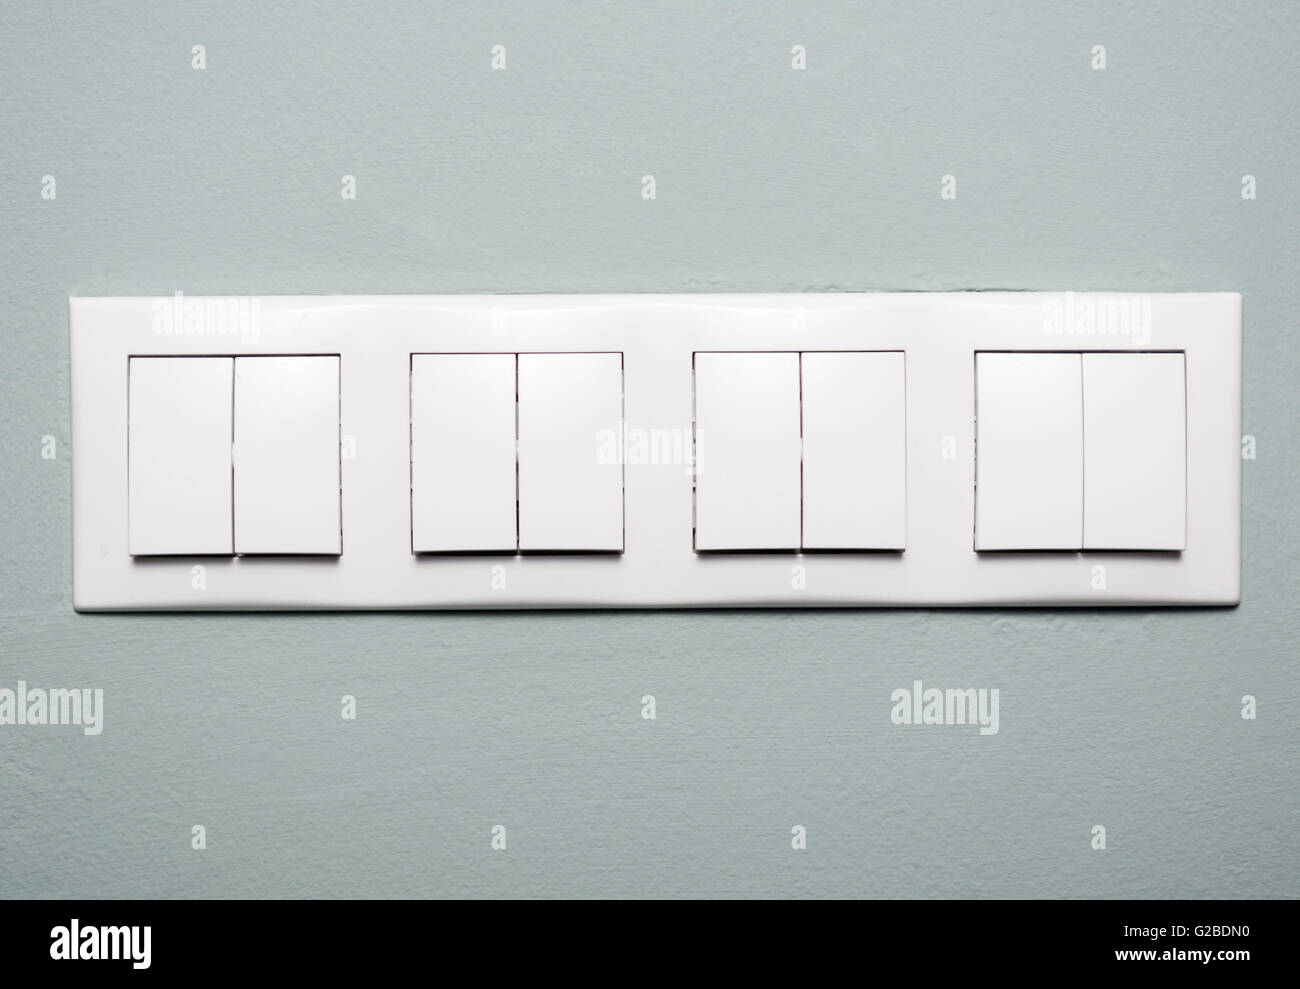 Light Switches Stock Photos & Light Switches Stock Images - Alamy